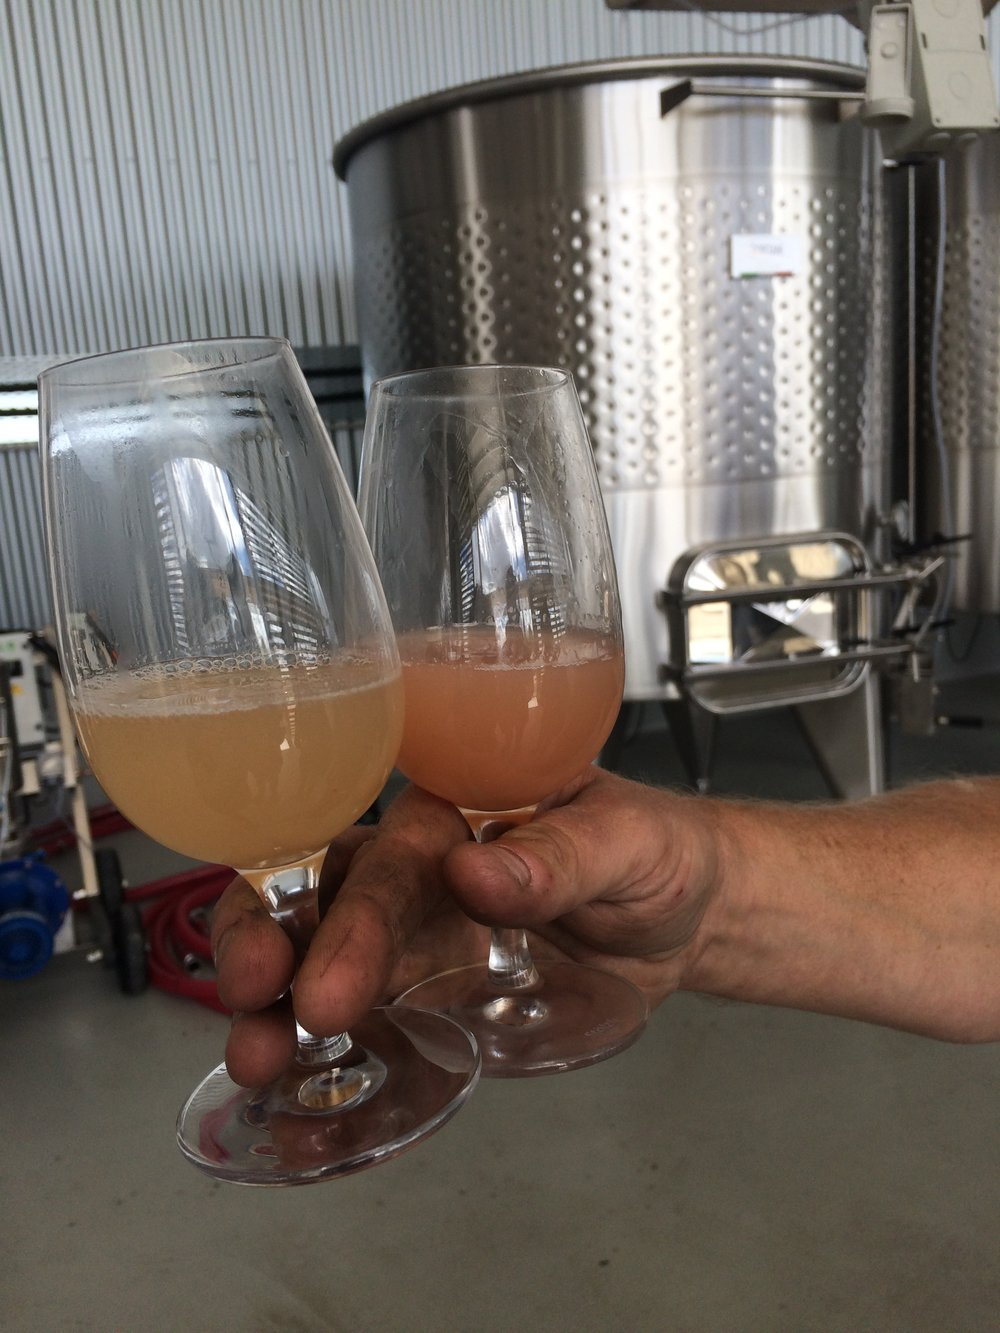 Pinot Gris 2 ways. Tank fermented on the left, barrel fermented on the right. The barrel allows more air in to the wine causing oxidation.